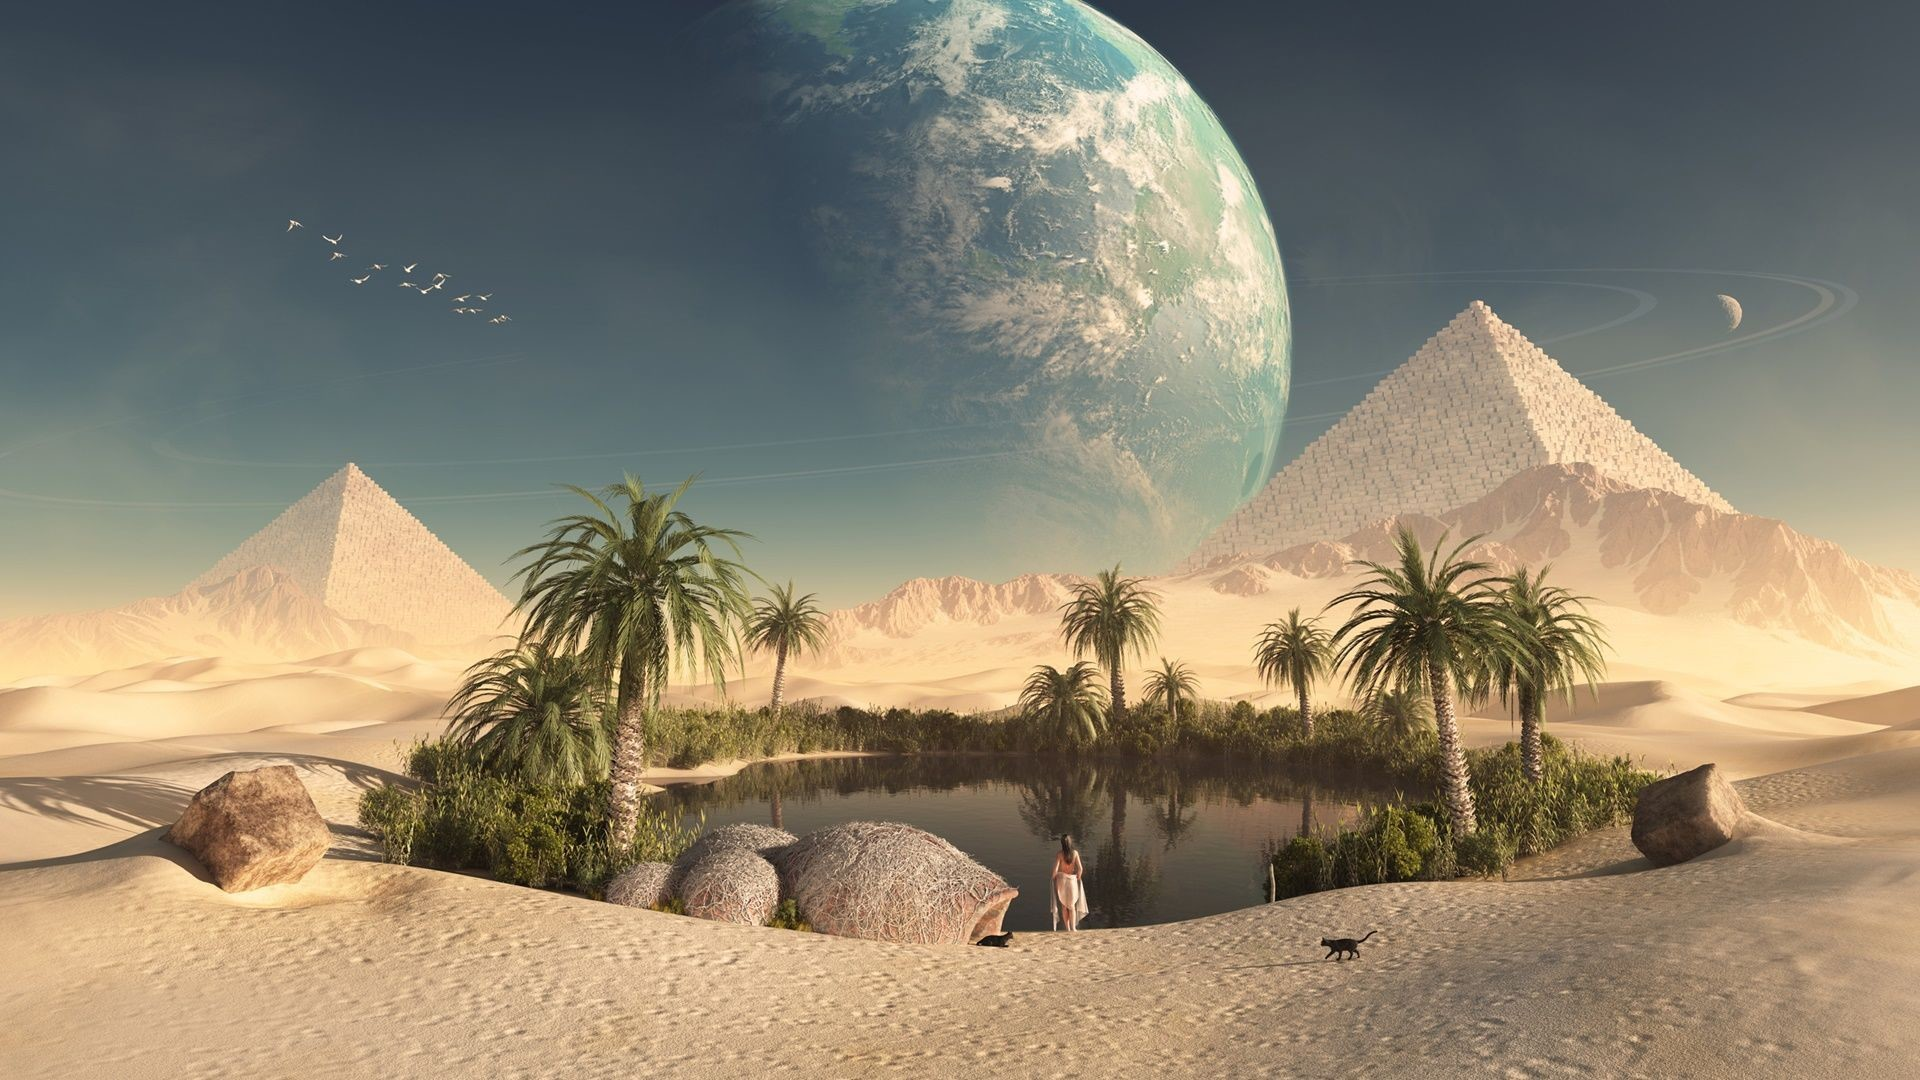 Res: 1920x1080, Amazing HD Desktop Wallpapers From Egypt